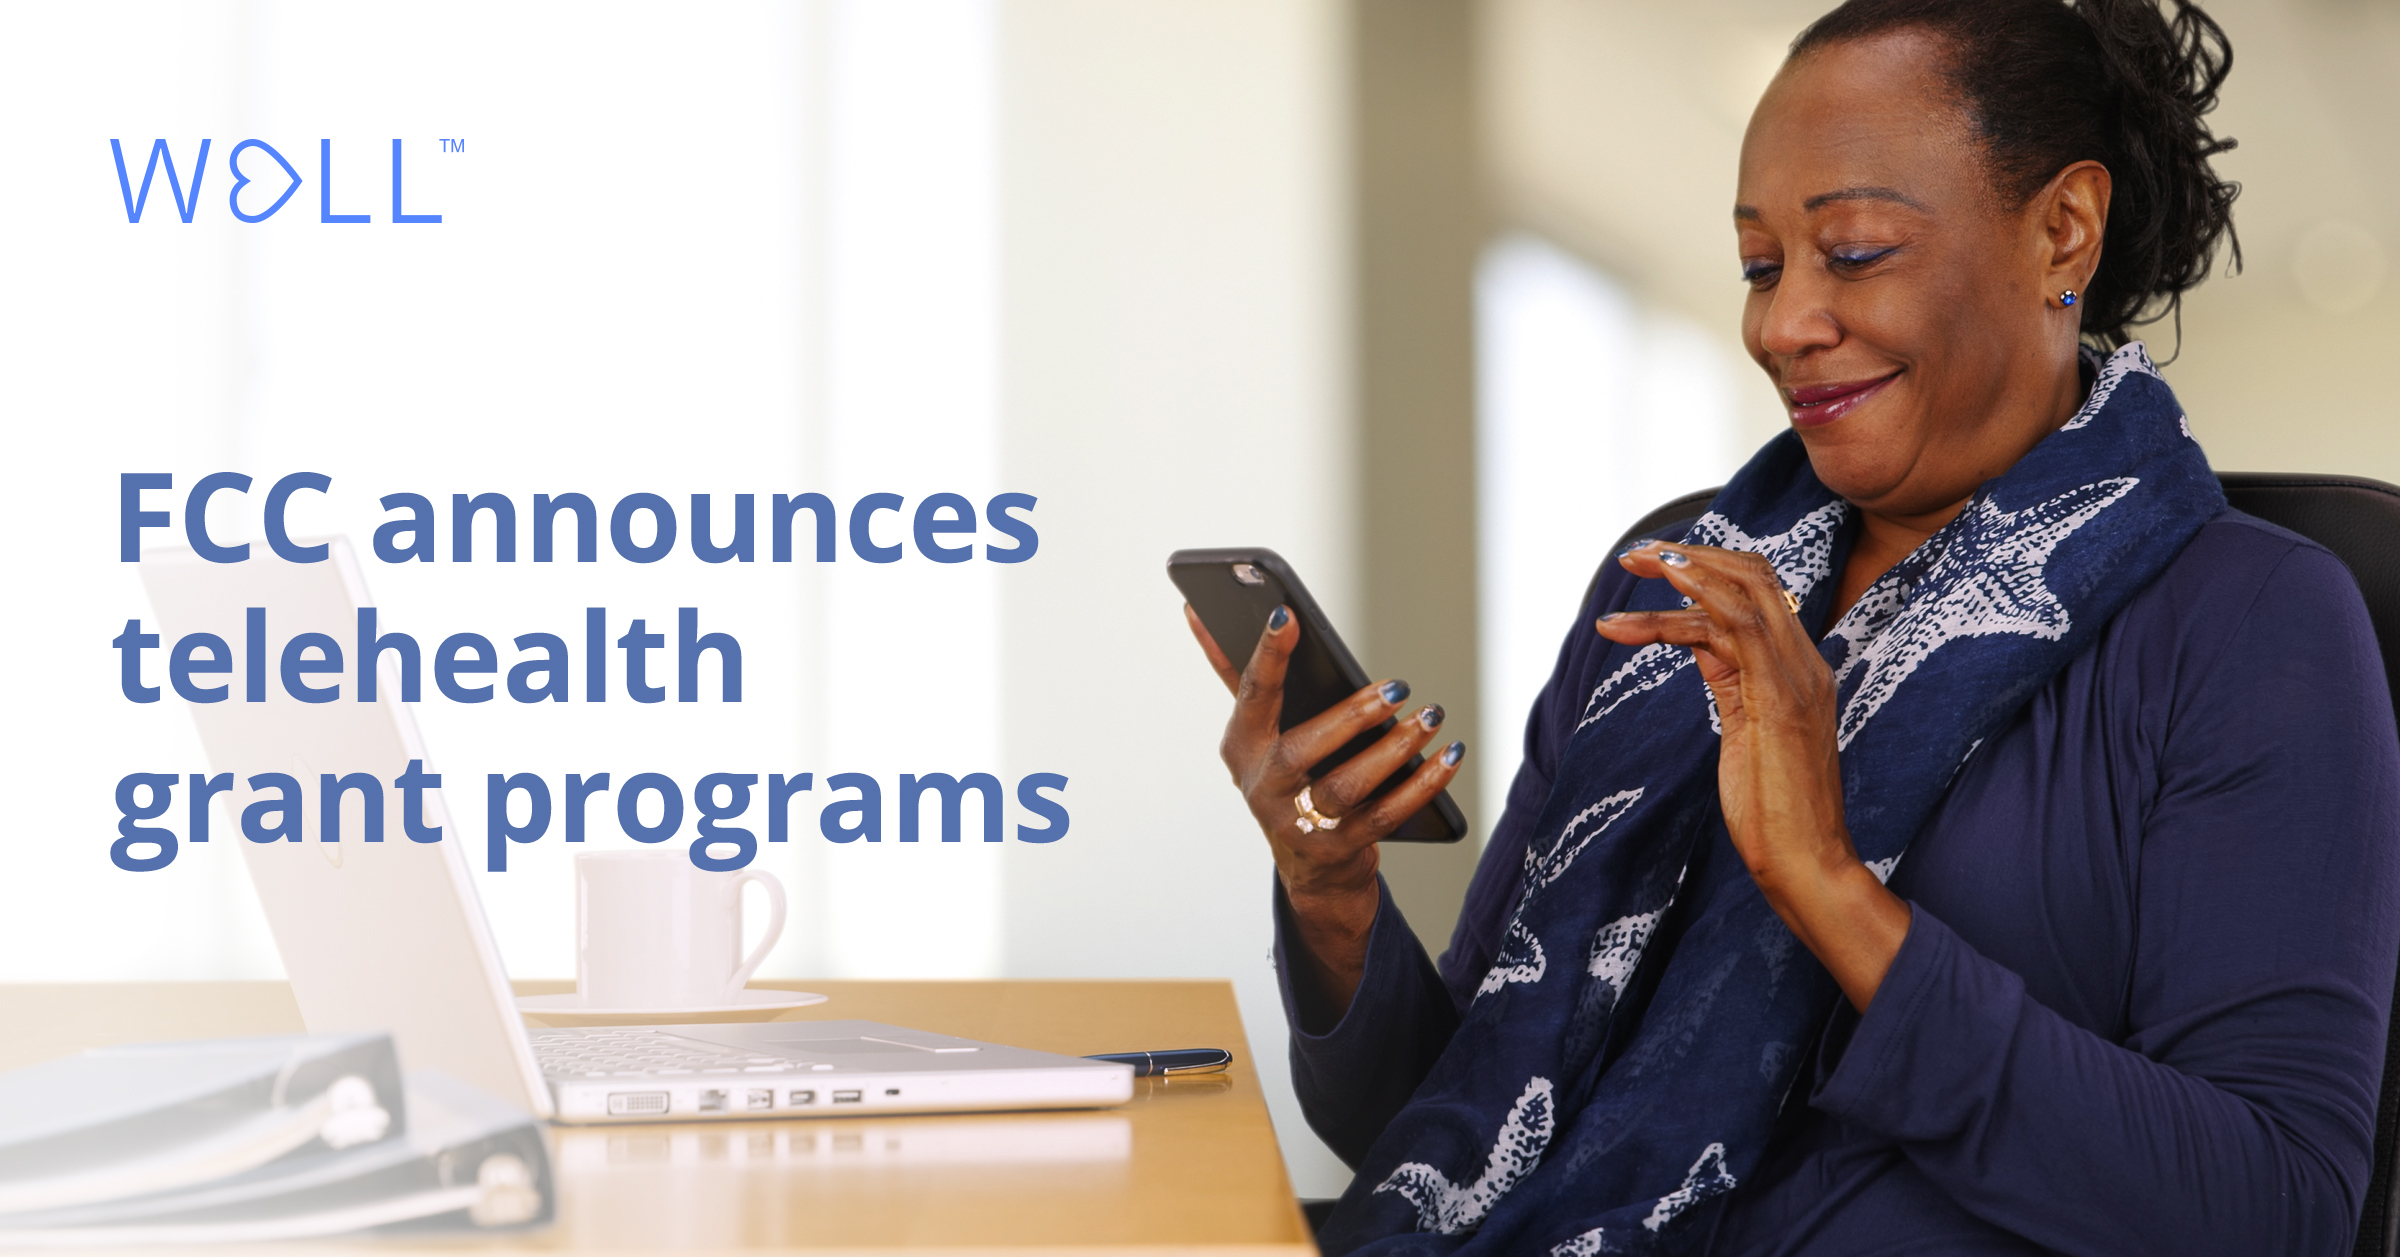 New FCC telehealth grant programs subsidize cost of WELL and other connected care services